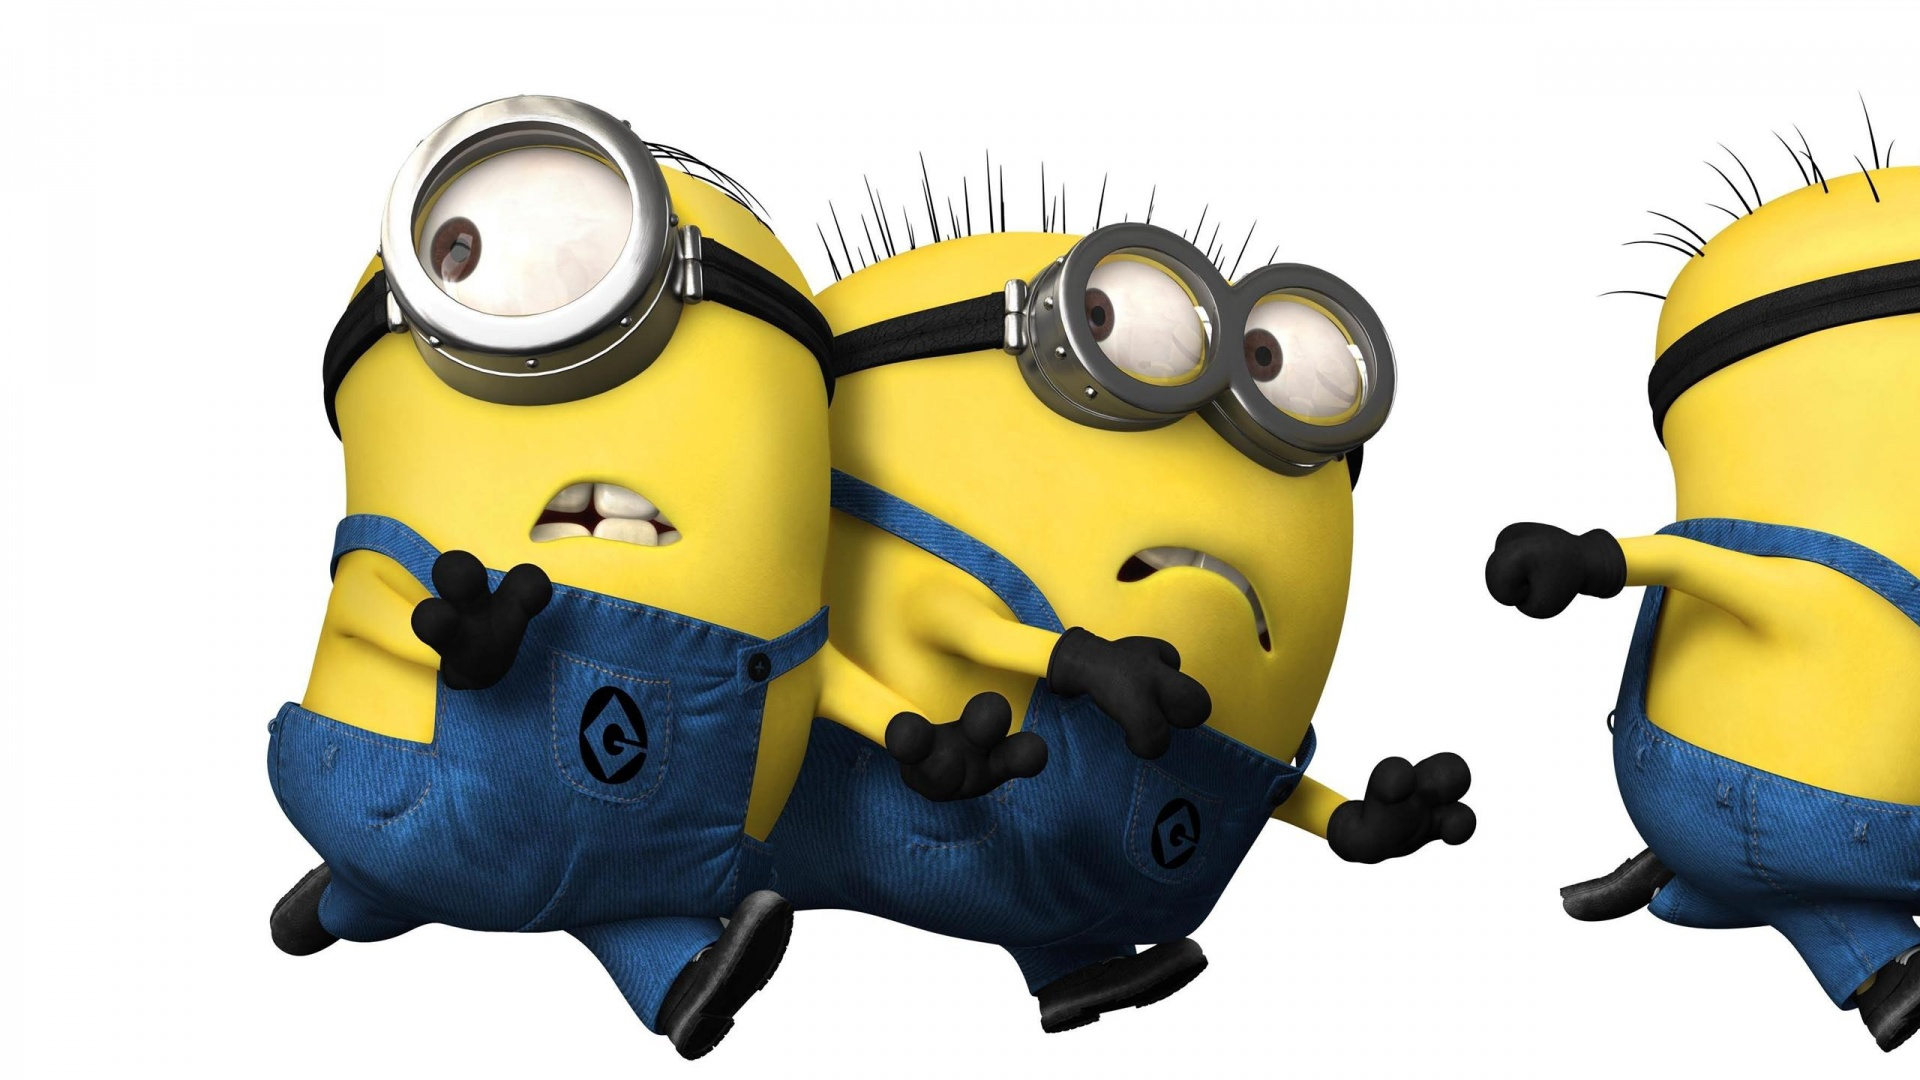 Desktop-Images-Despicable-Me-Minions-Despicable-Me-wallpaper-wpc9004179